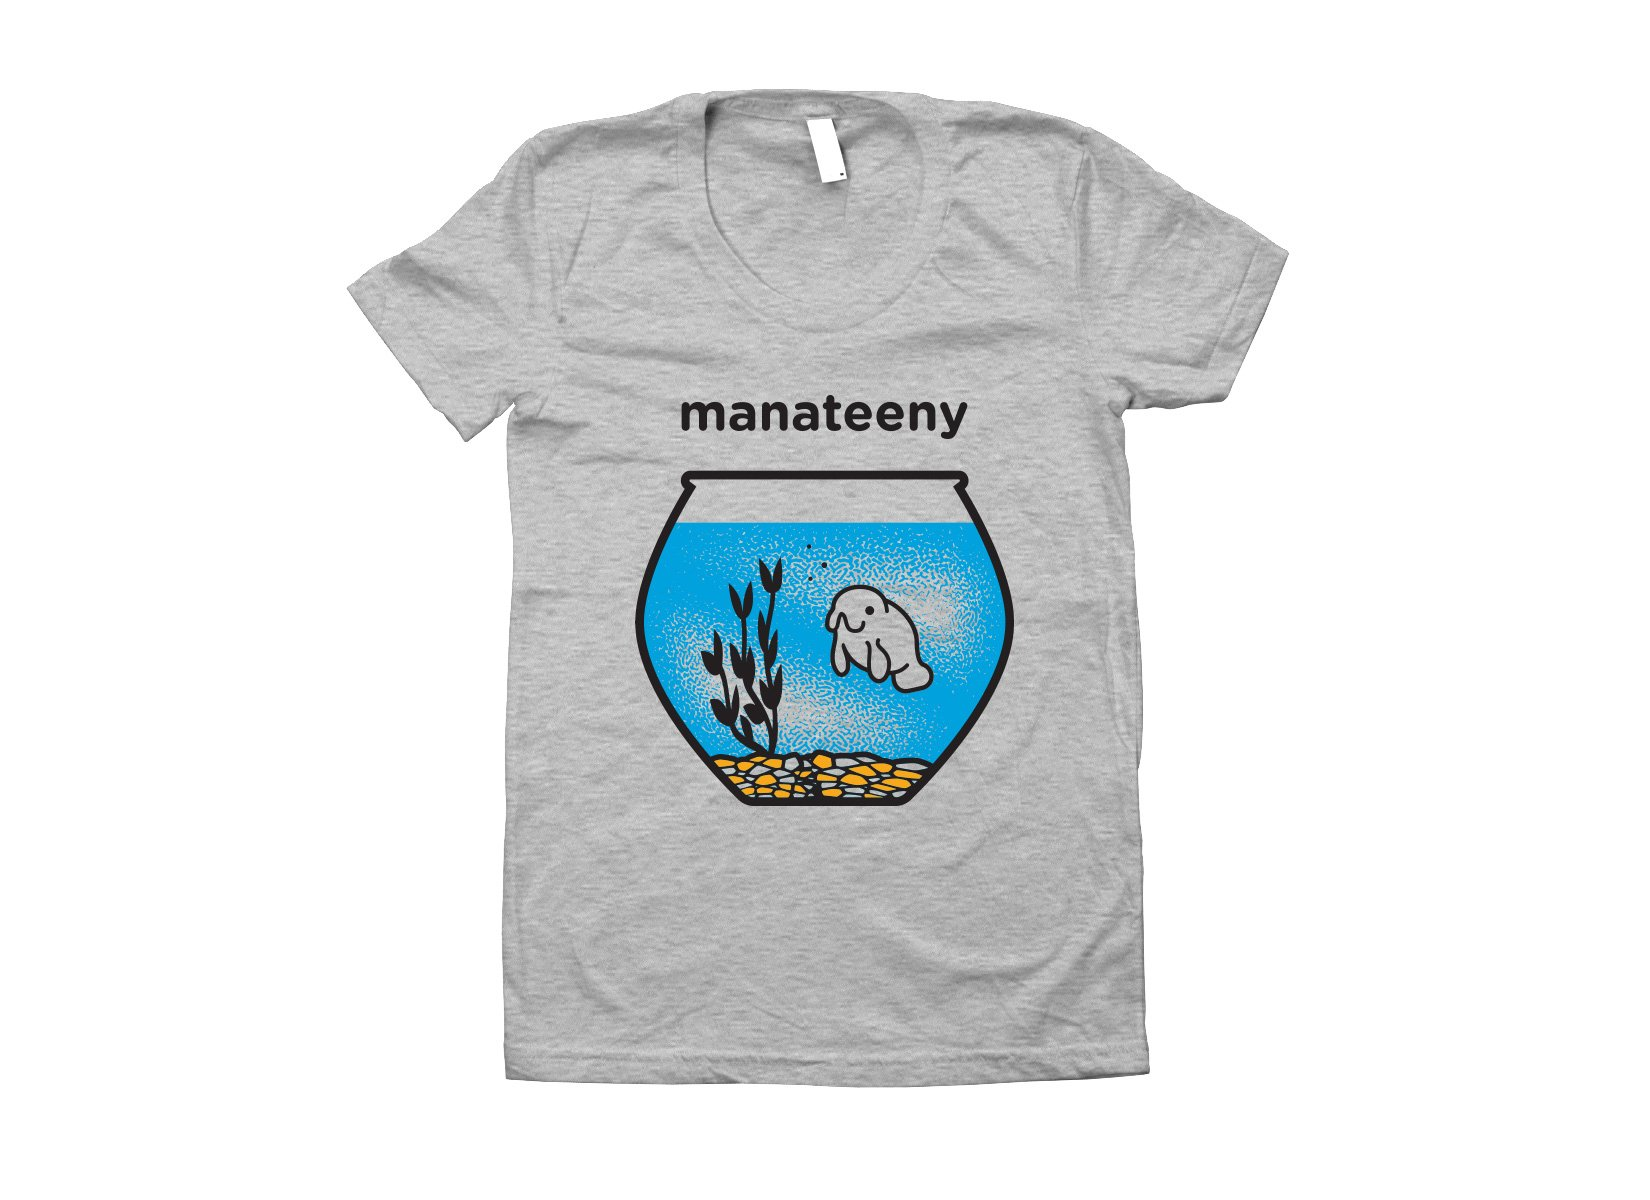 Manateeny on Juniors T-Shirt